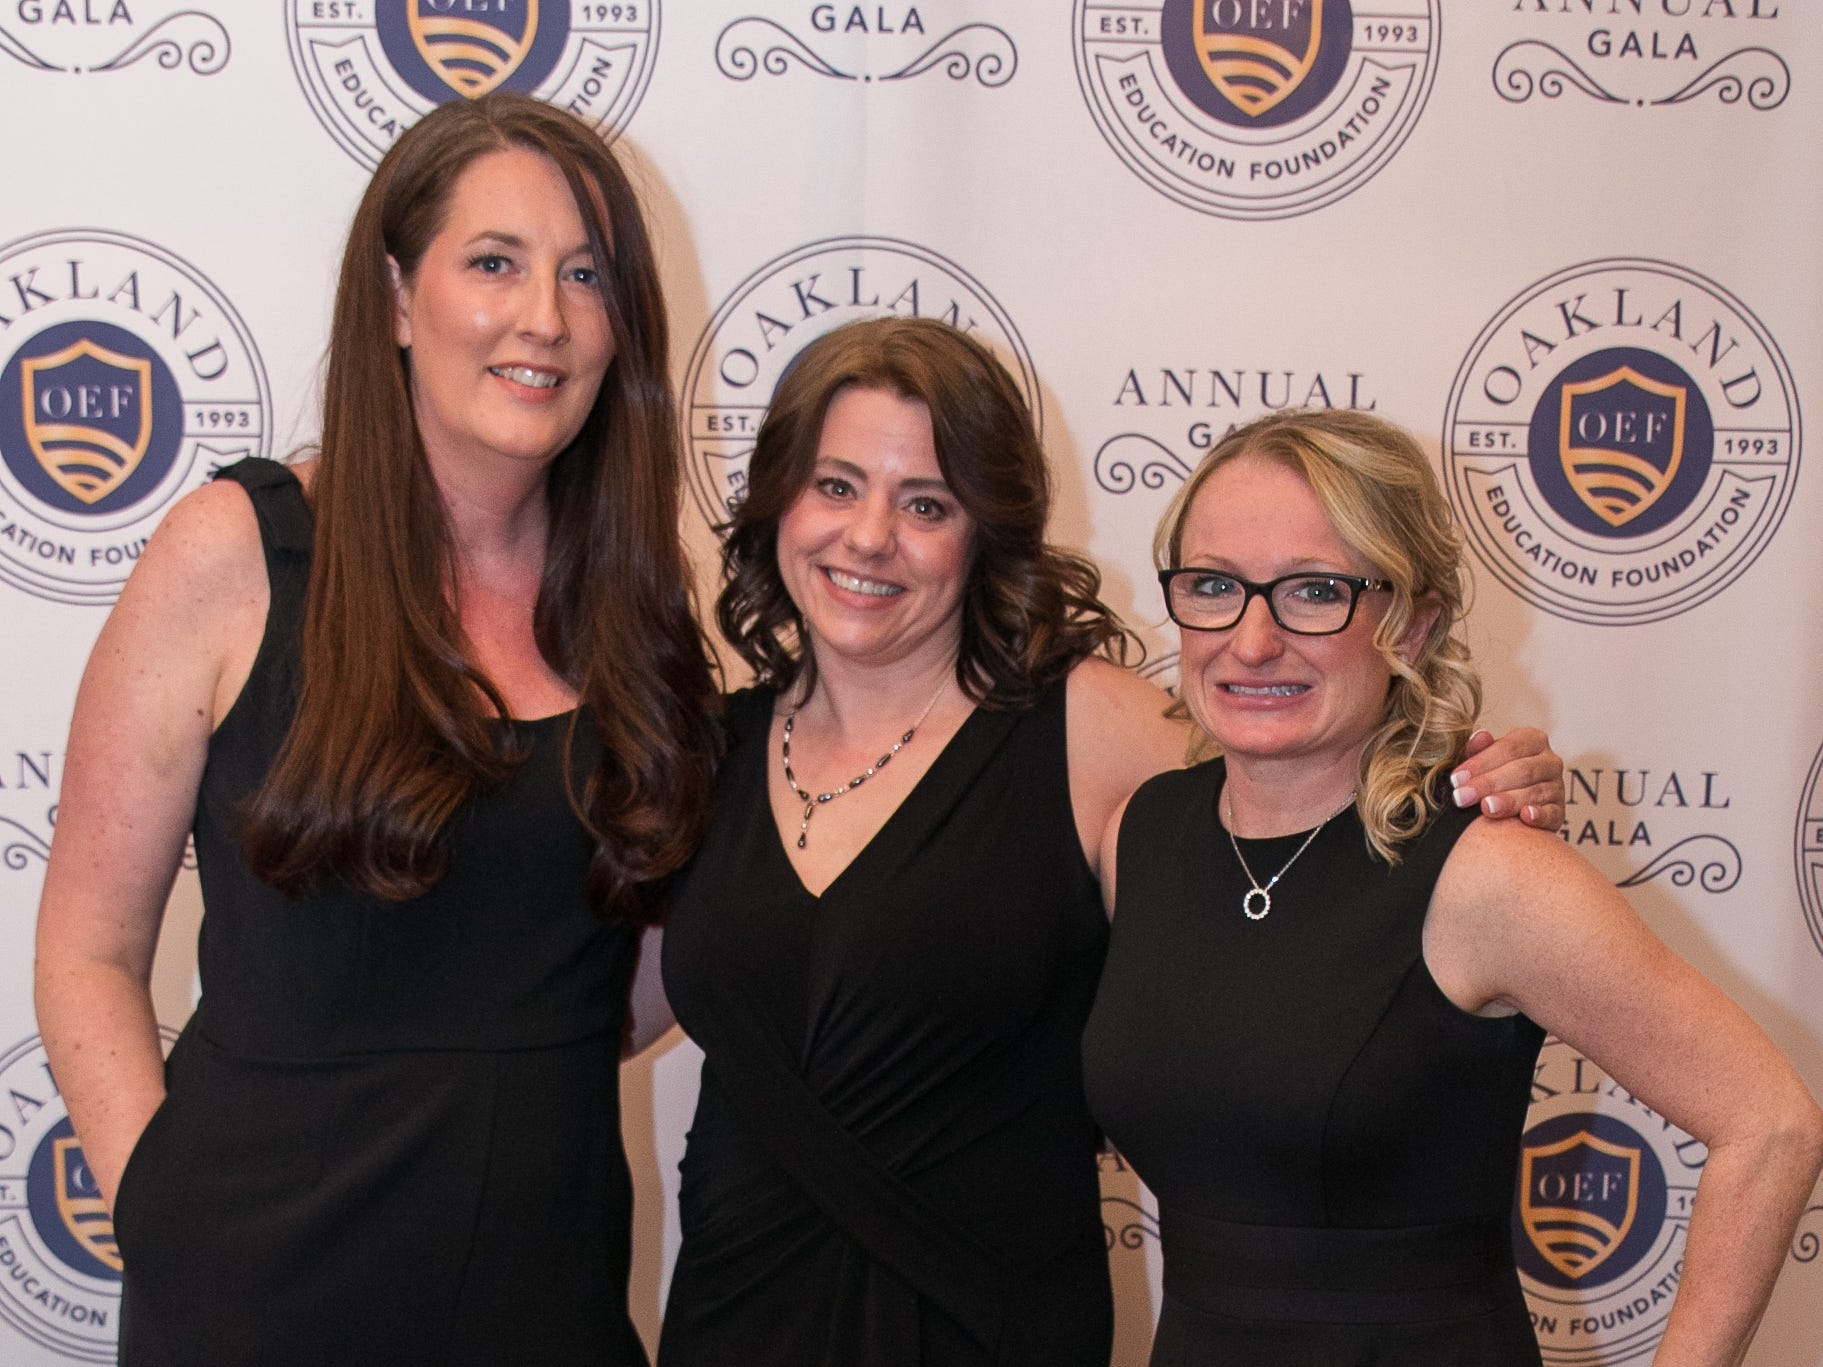 Kerry Thurston, Bree Kehr, Kim Pol. The Oakland Education Foundation held their 25th Anniversary Casino Night Gala at Preakness Hills Country Club in Wayne. 03/16/2019